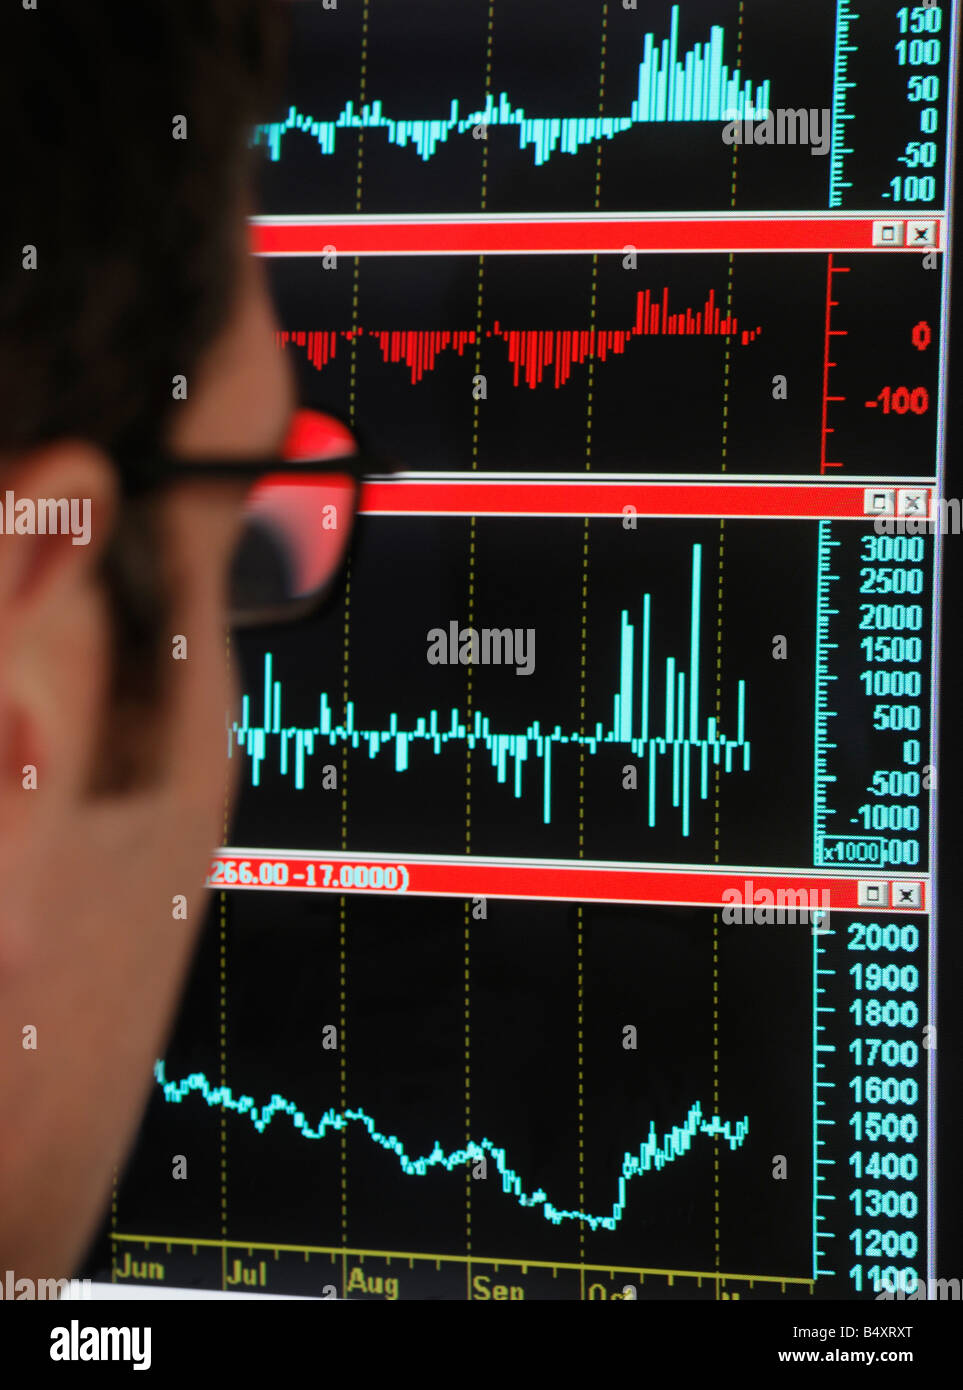 Futures and Options Derivatives Trader Looking at a Screen of Market Data - Stock Image